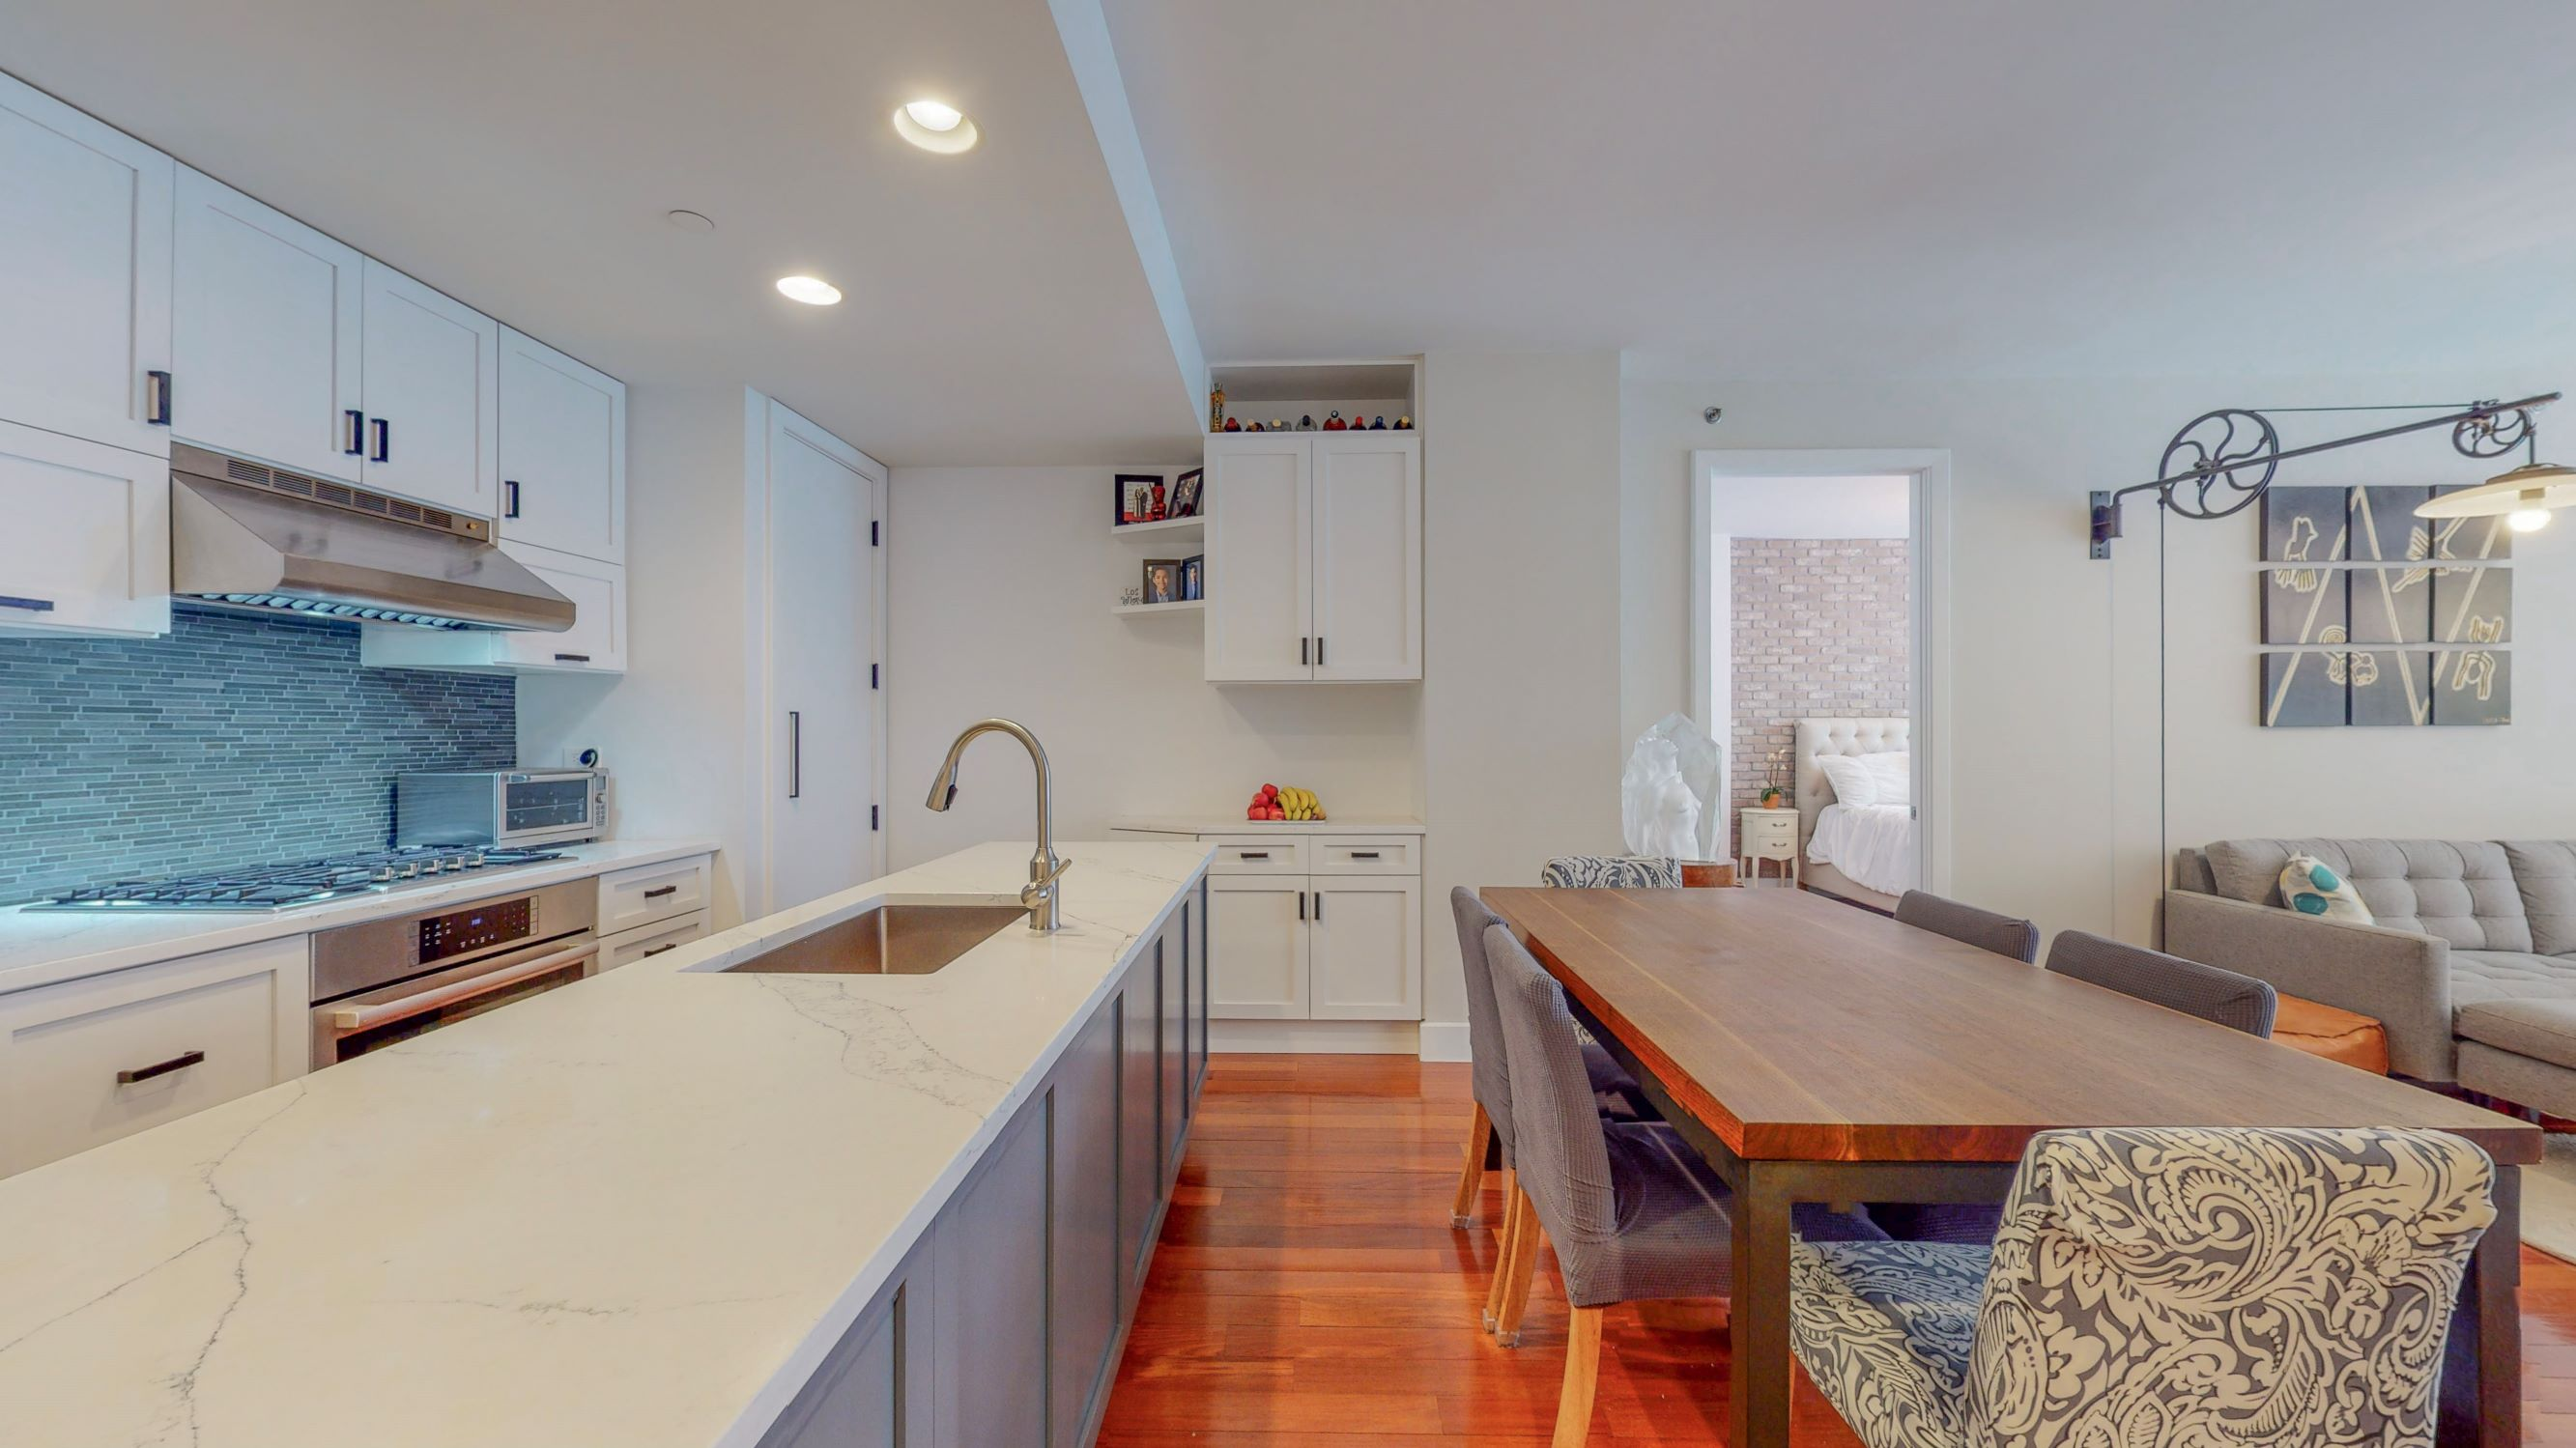 84 Front Street, Brooklyn, Kings, New York, United States 11201, 2 Bedrooms Bedrooms, ,2 BathroomsBathrooms,Condo,IN-CONTRACT,The Nexus,Front Street,2,1132